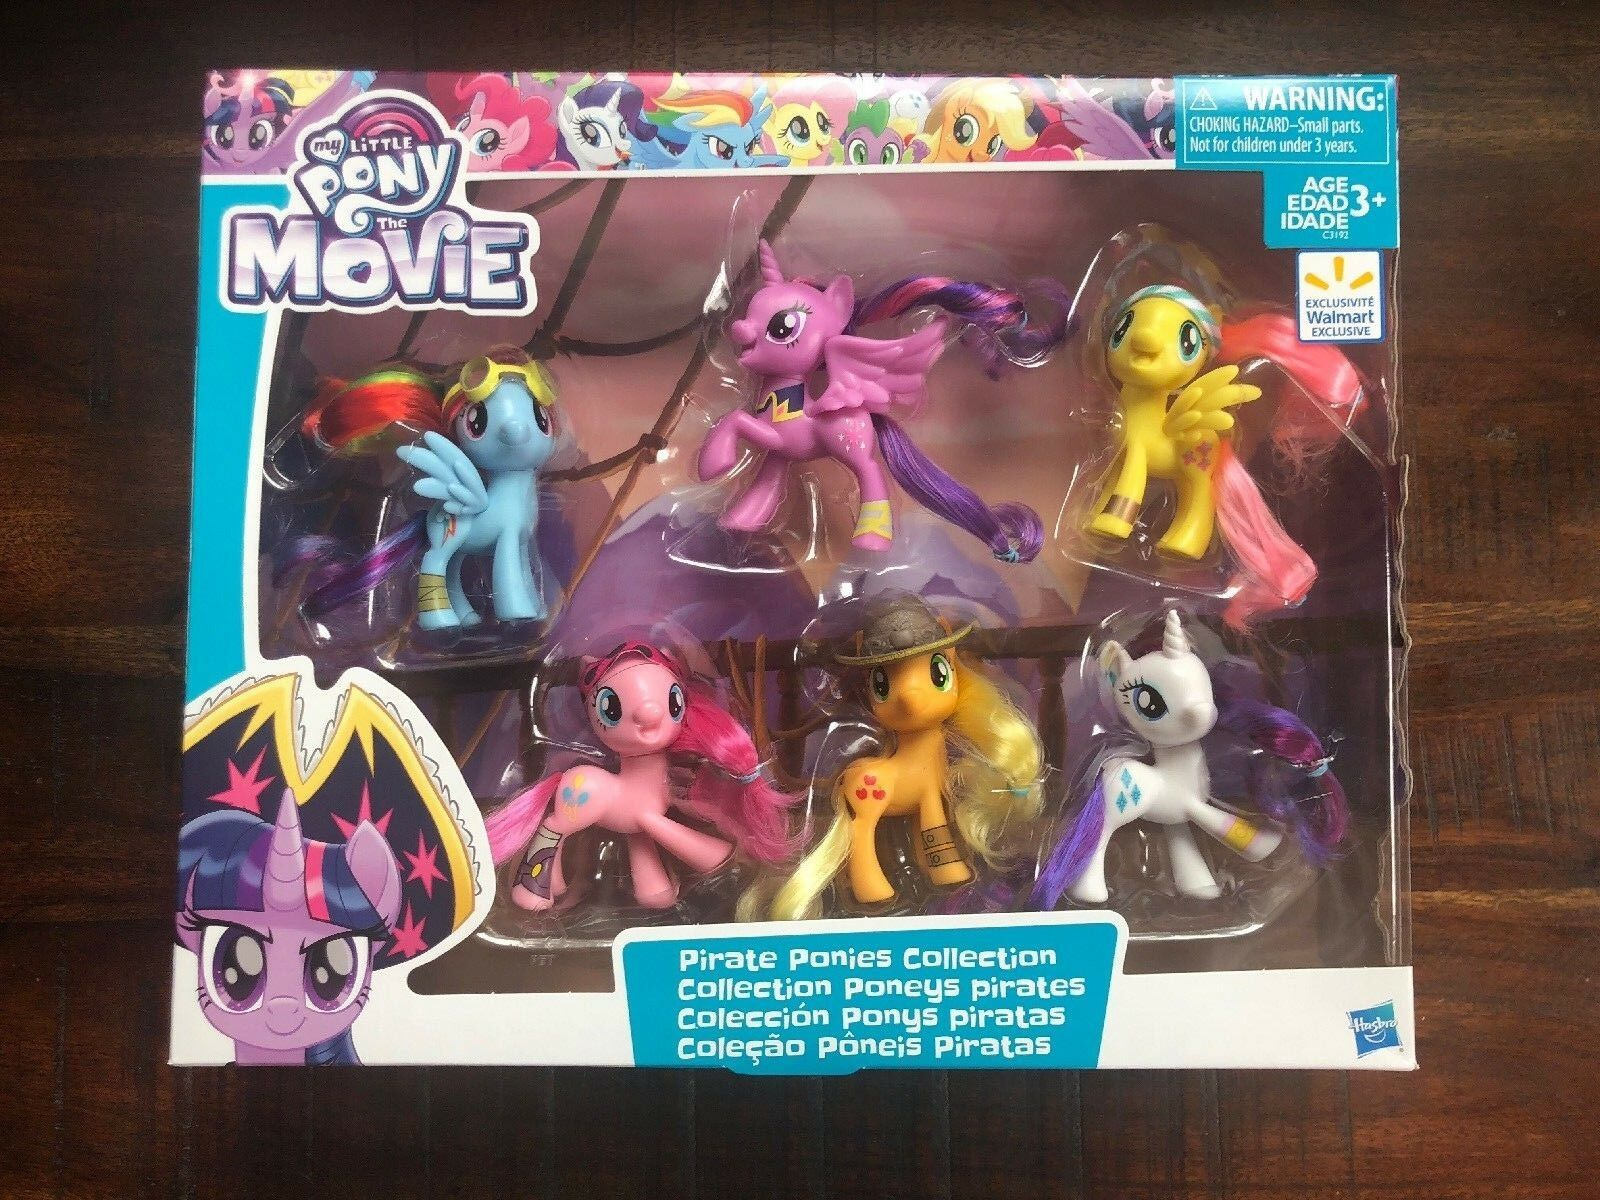 MY LITTLE PONY THE MOVIE PIRATE PONIES COLLECTION--NEW--FACTORY SEALED